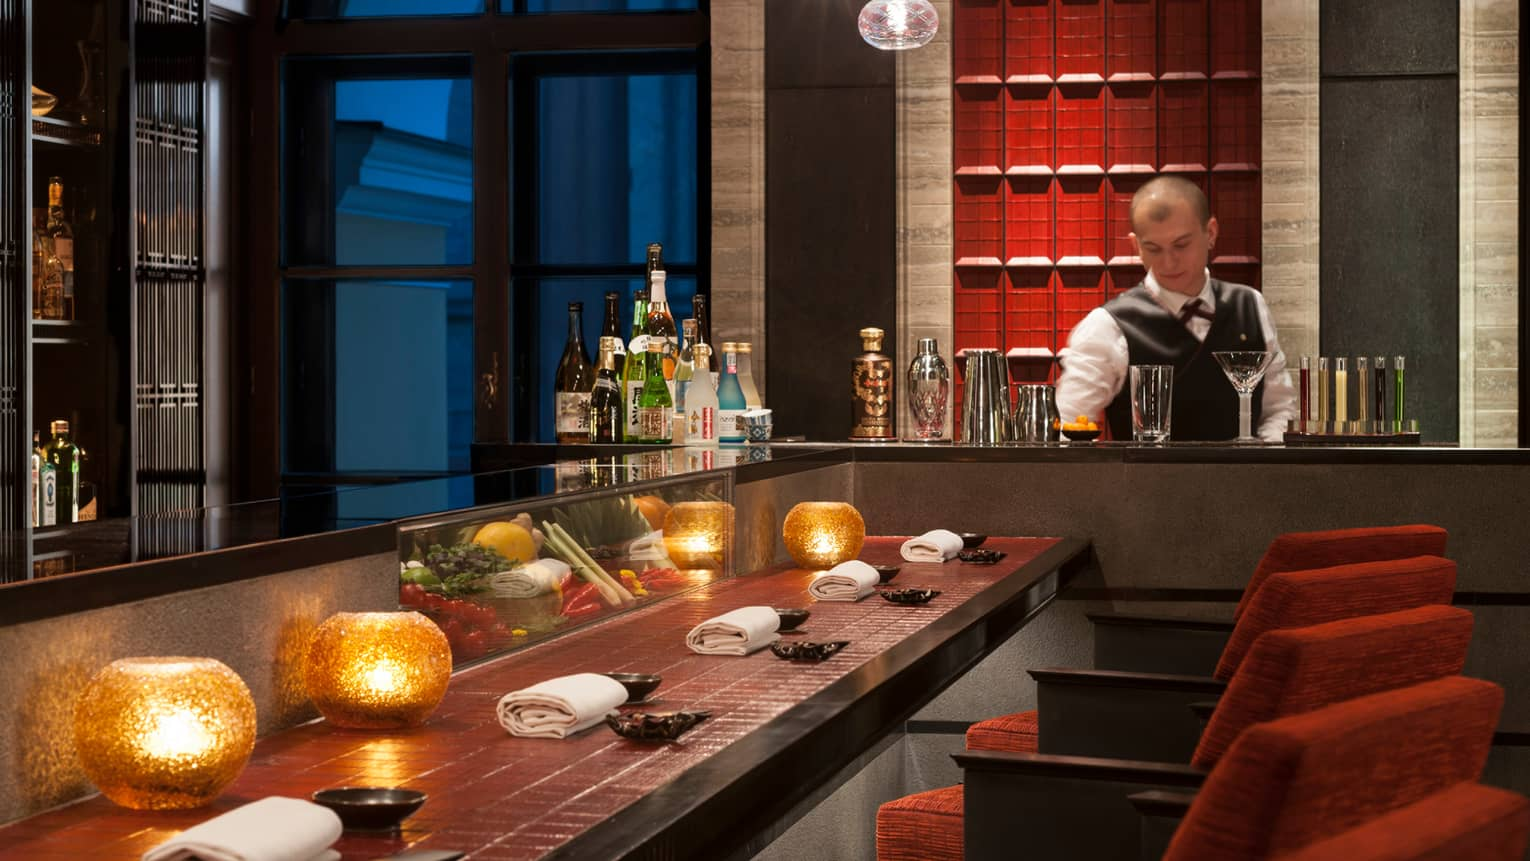 Bartender mixes drinks in front of long red tile bar with glowing orange candle votives, red stools